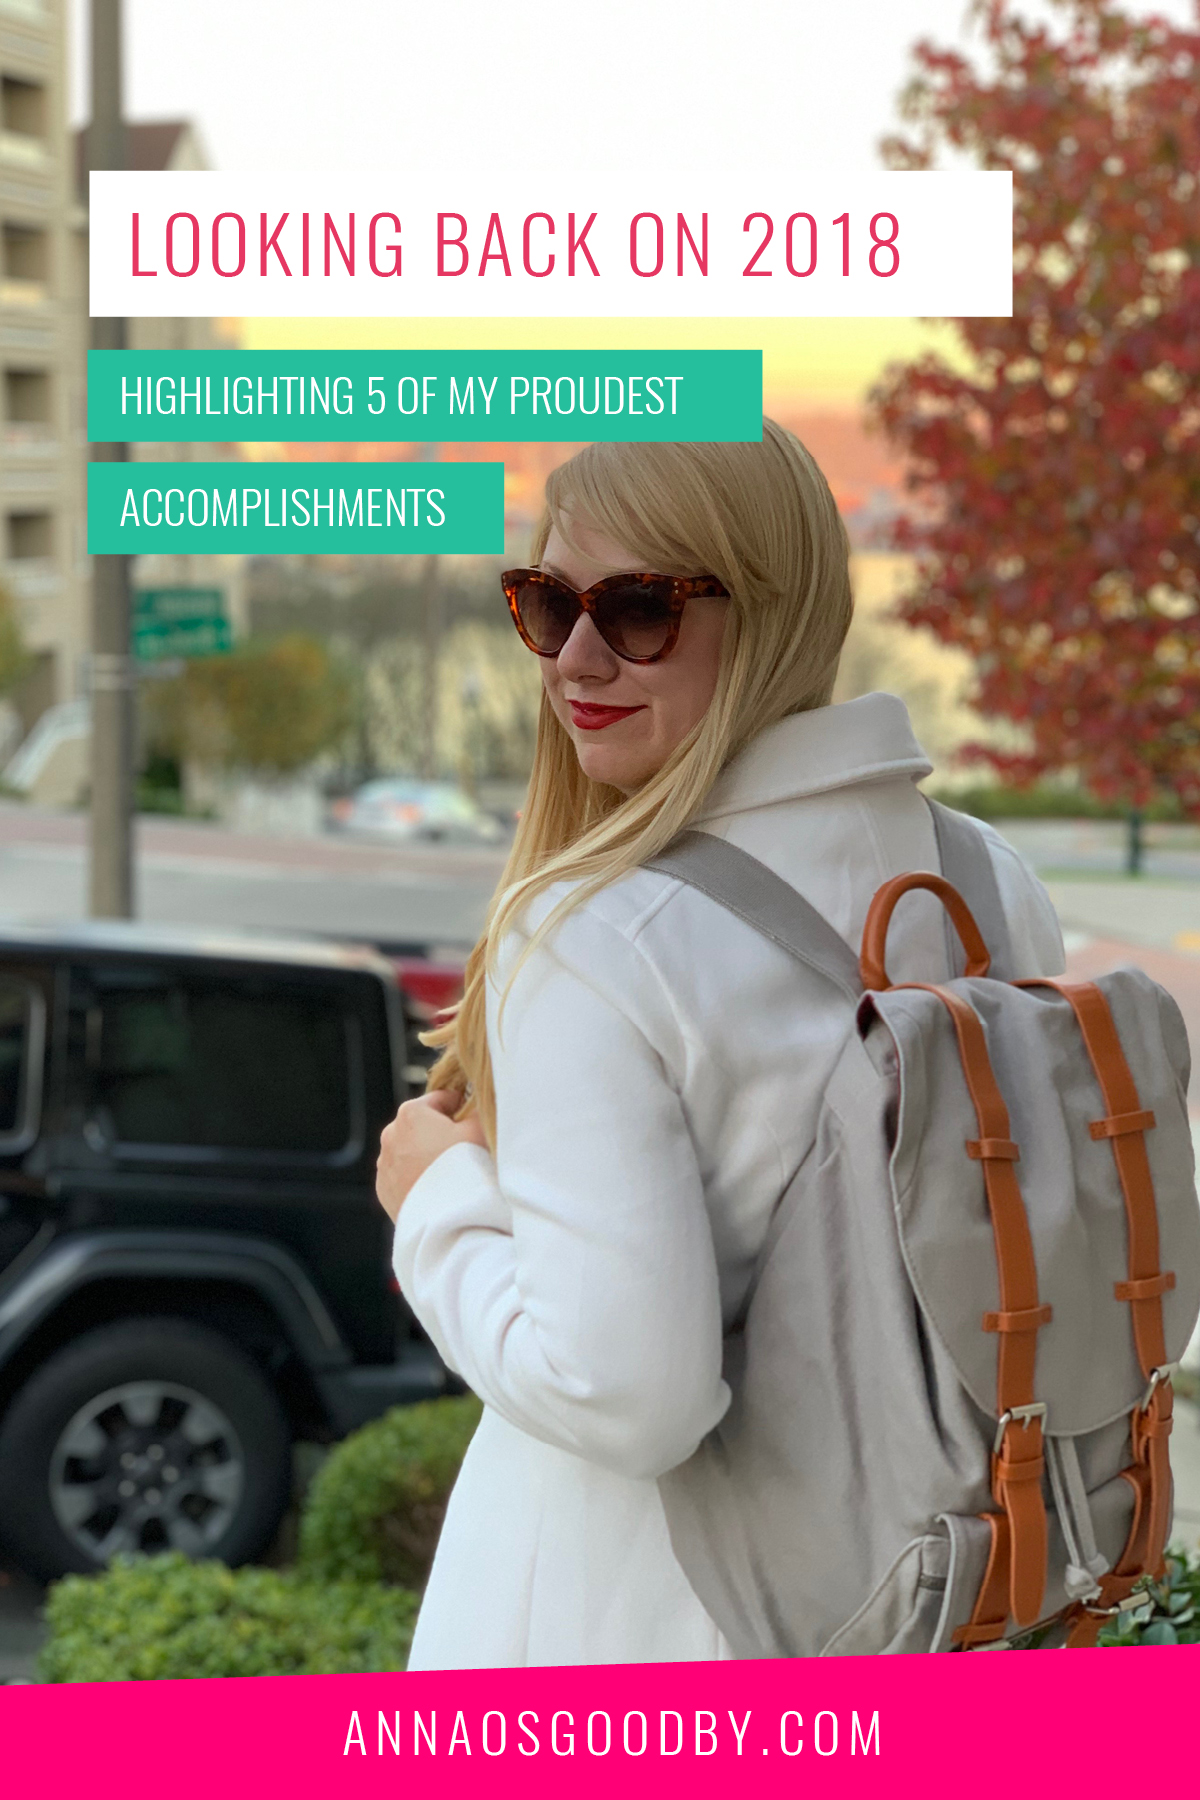 Anna Osgoodby Life + Biz :: Looking Back on 2018 :: Highlighting 5 of my Proudest Accomplishments